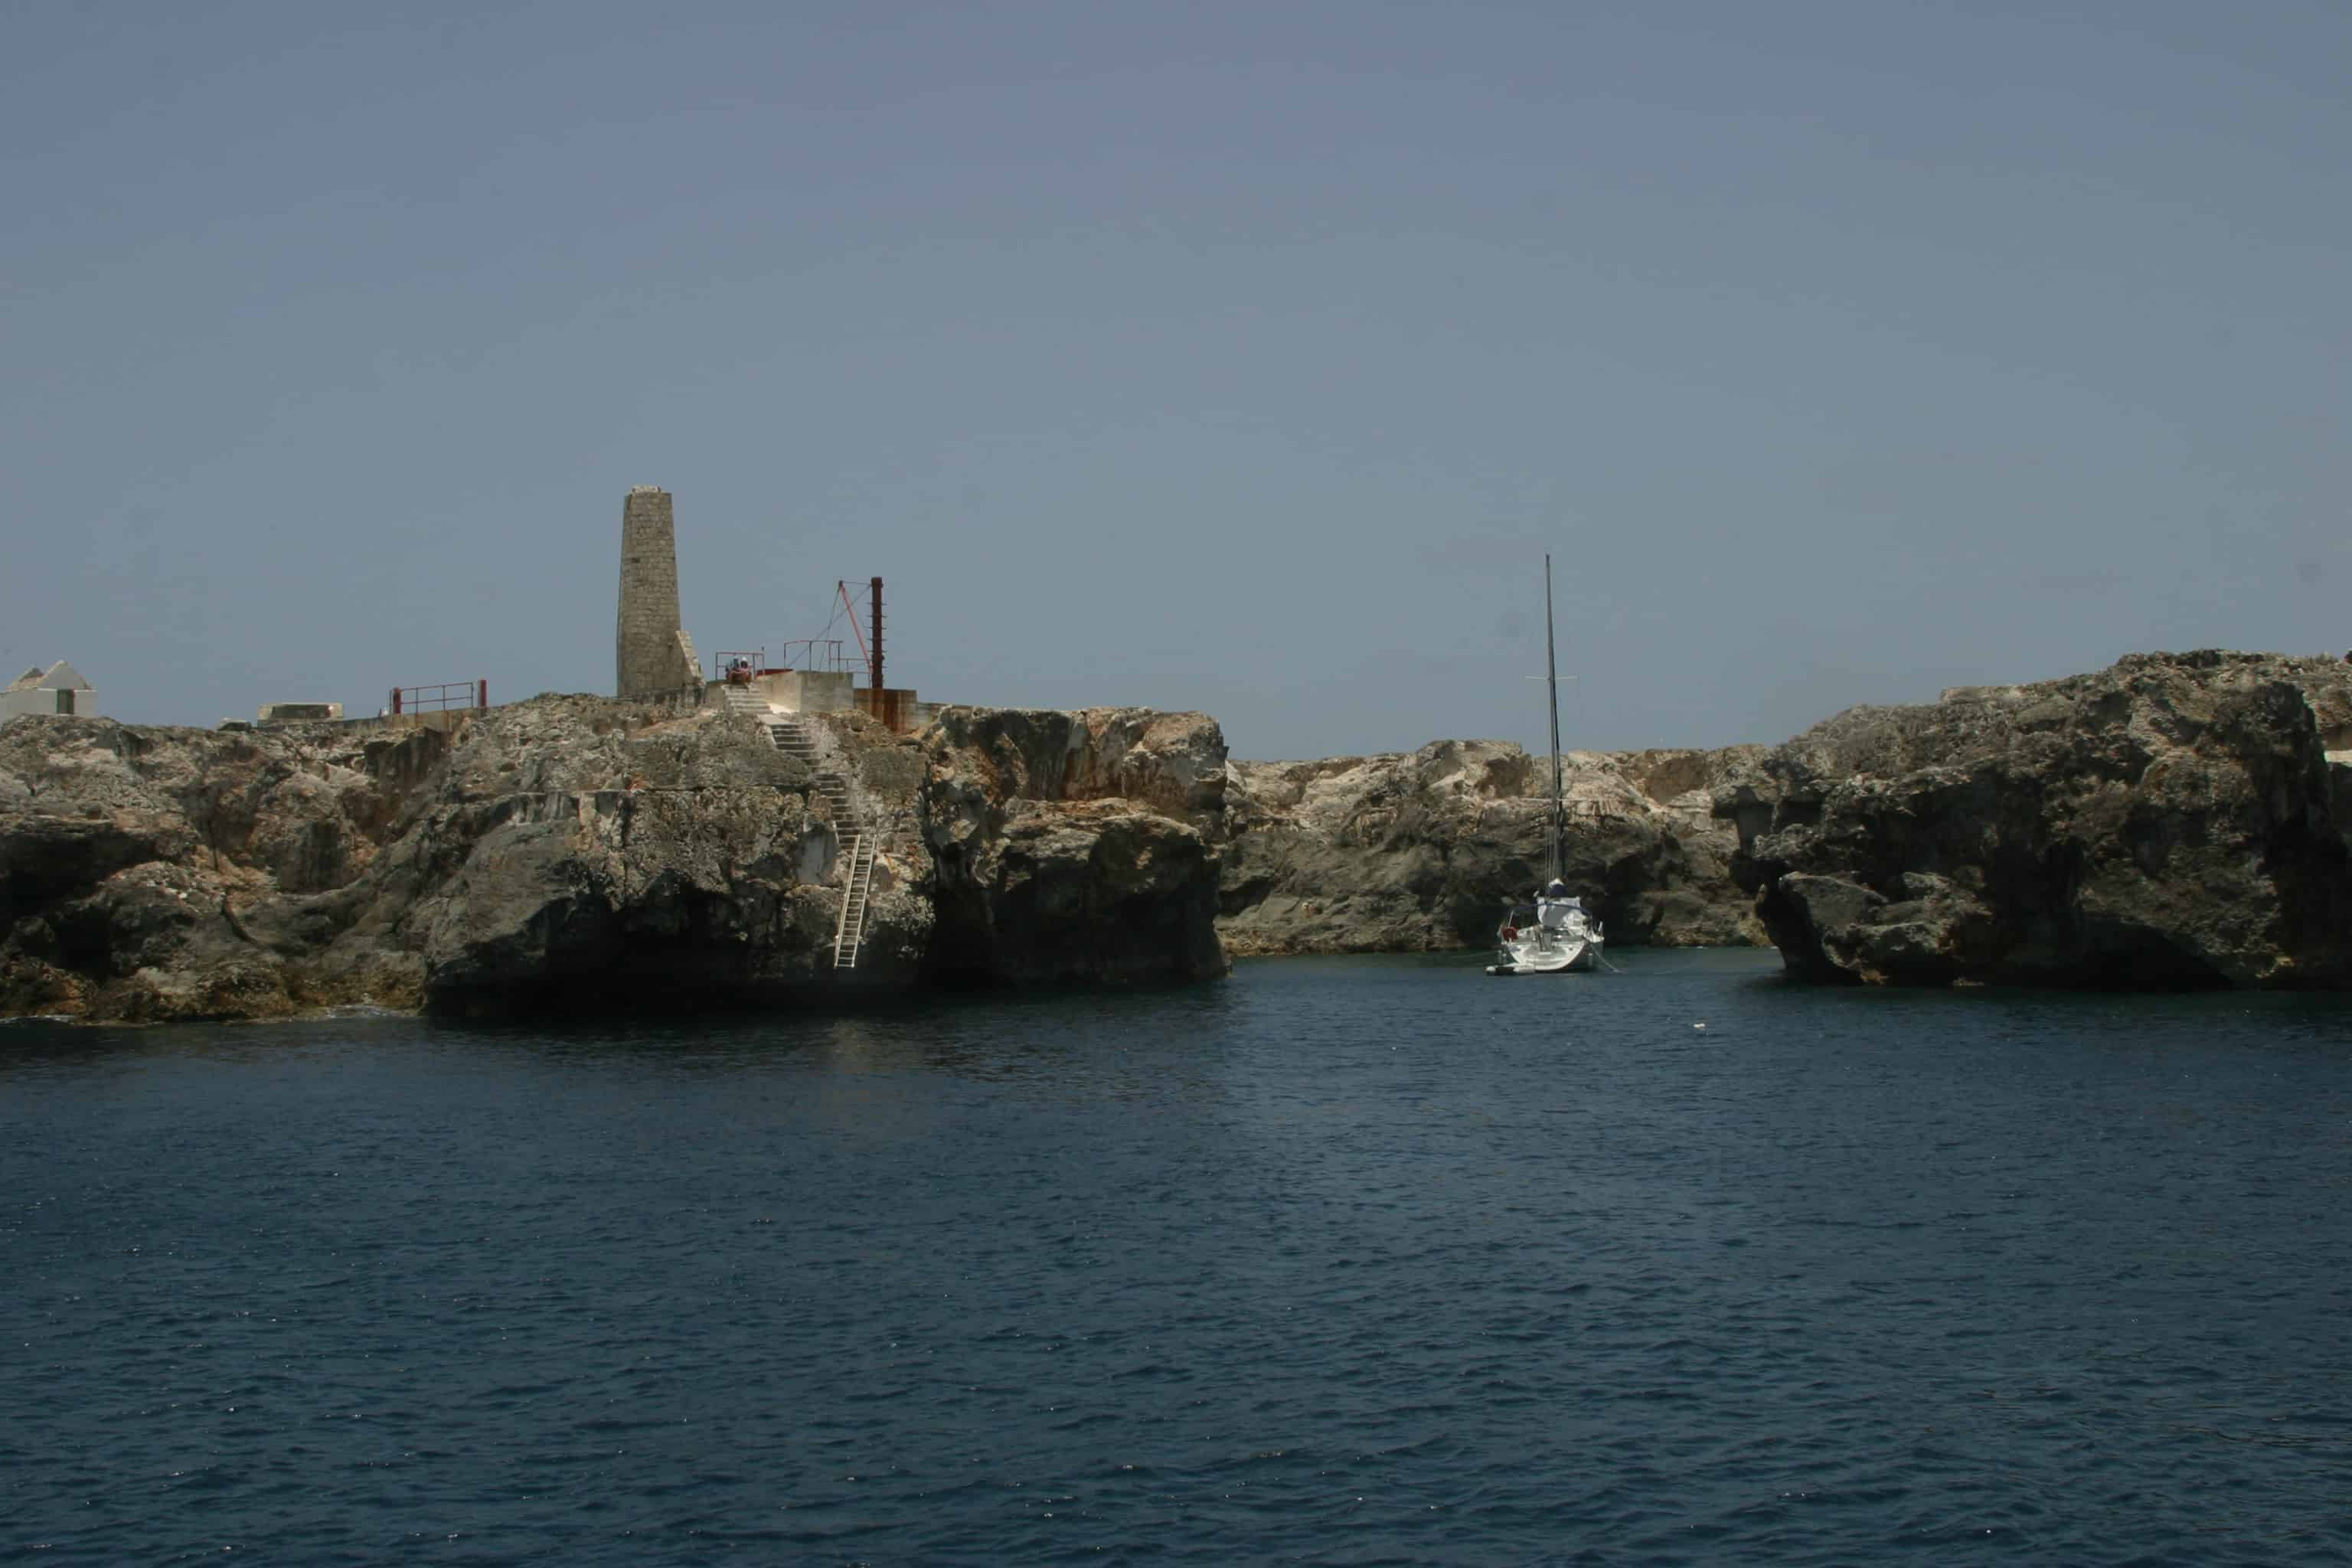 The landing (see ladder) at Sombrero; some of the old buildings are visible on the top of the island; Copyright: Dr Mike Pienkowski